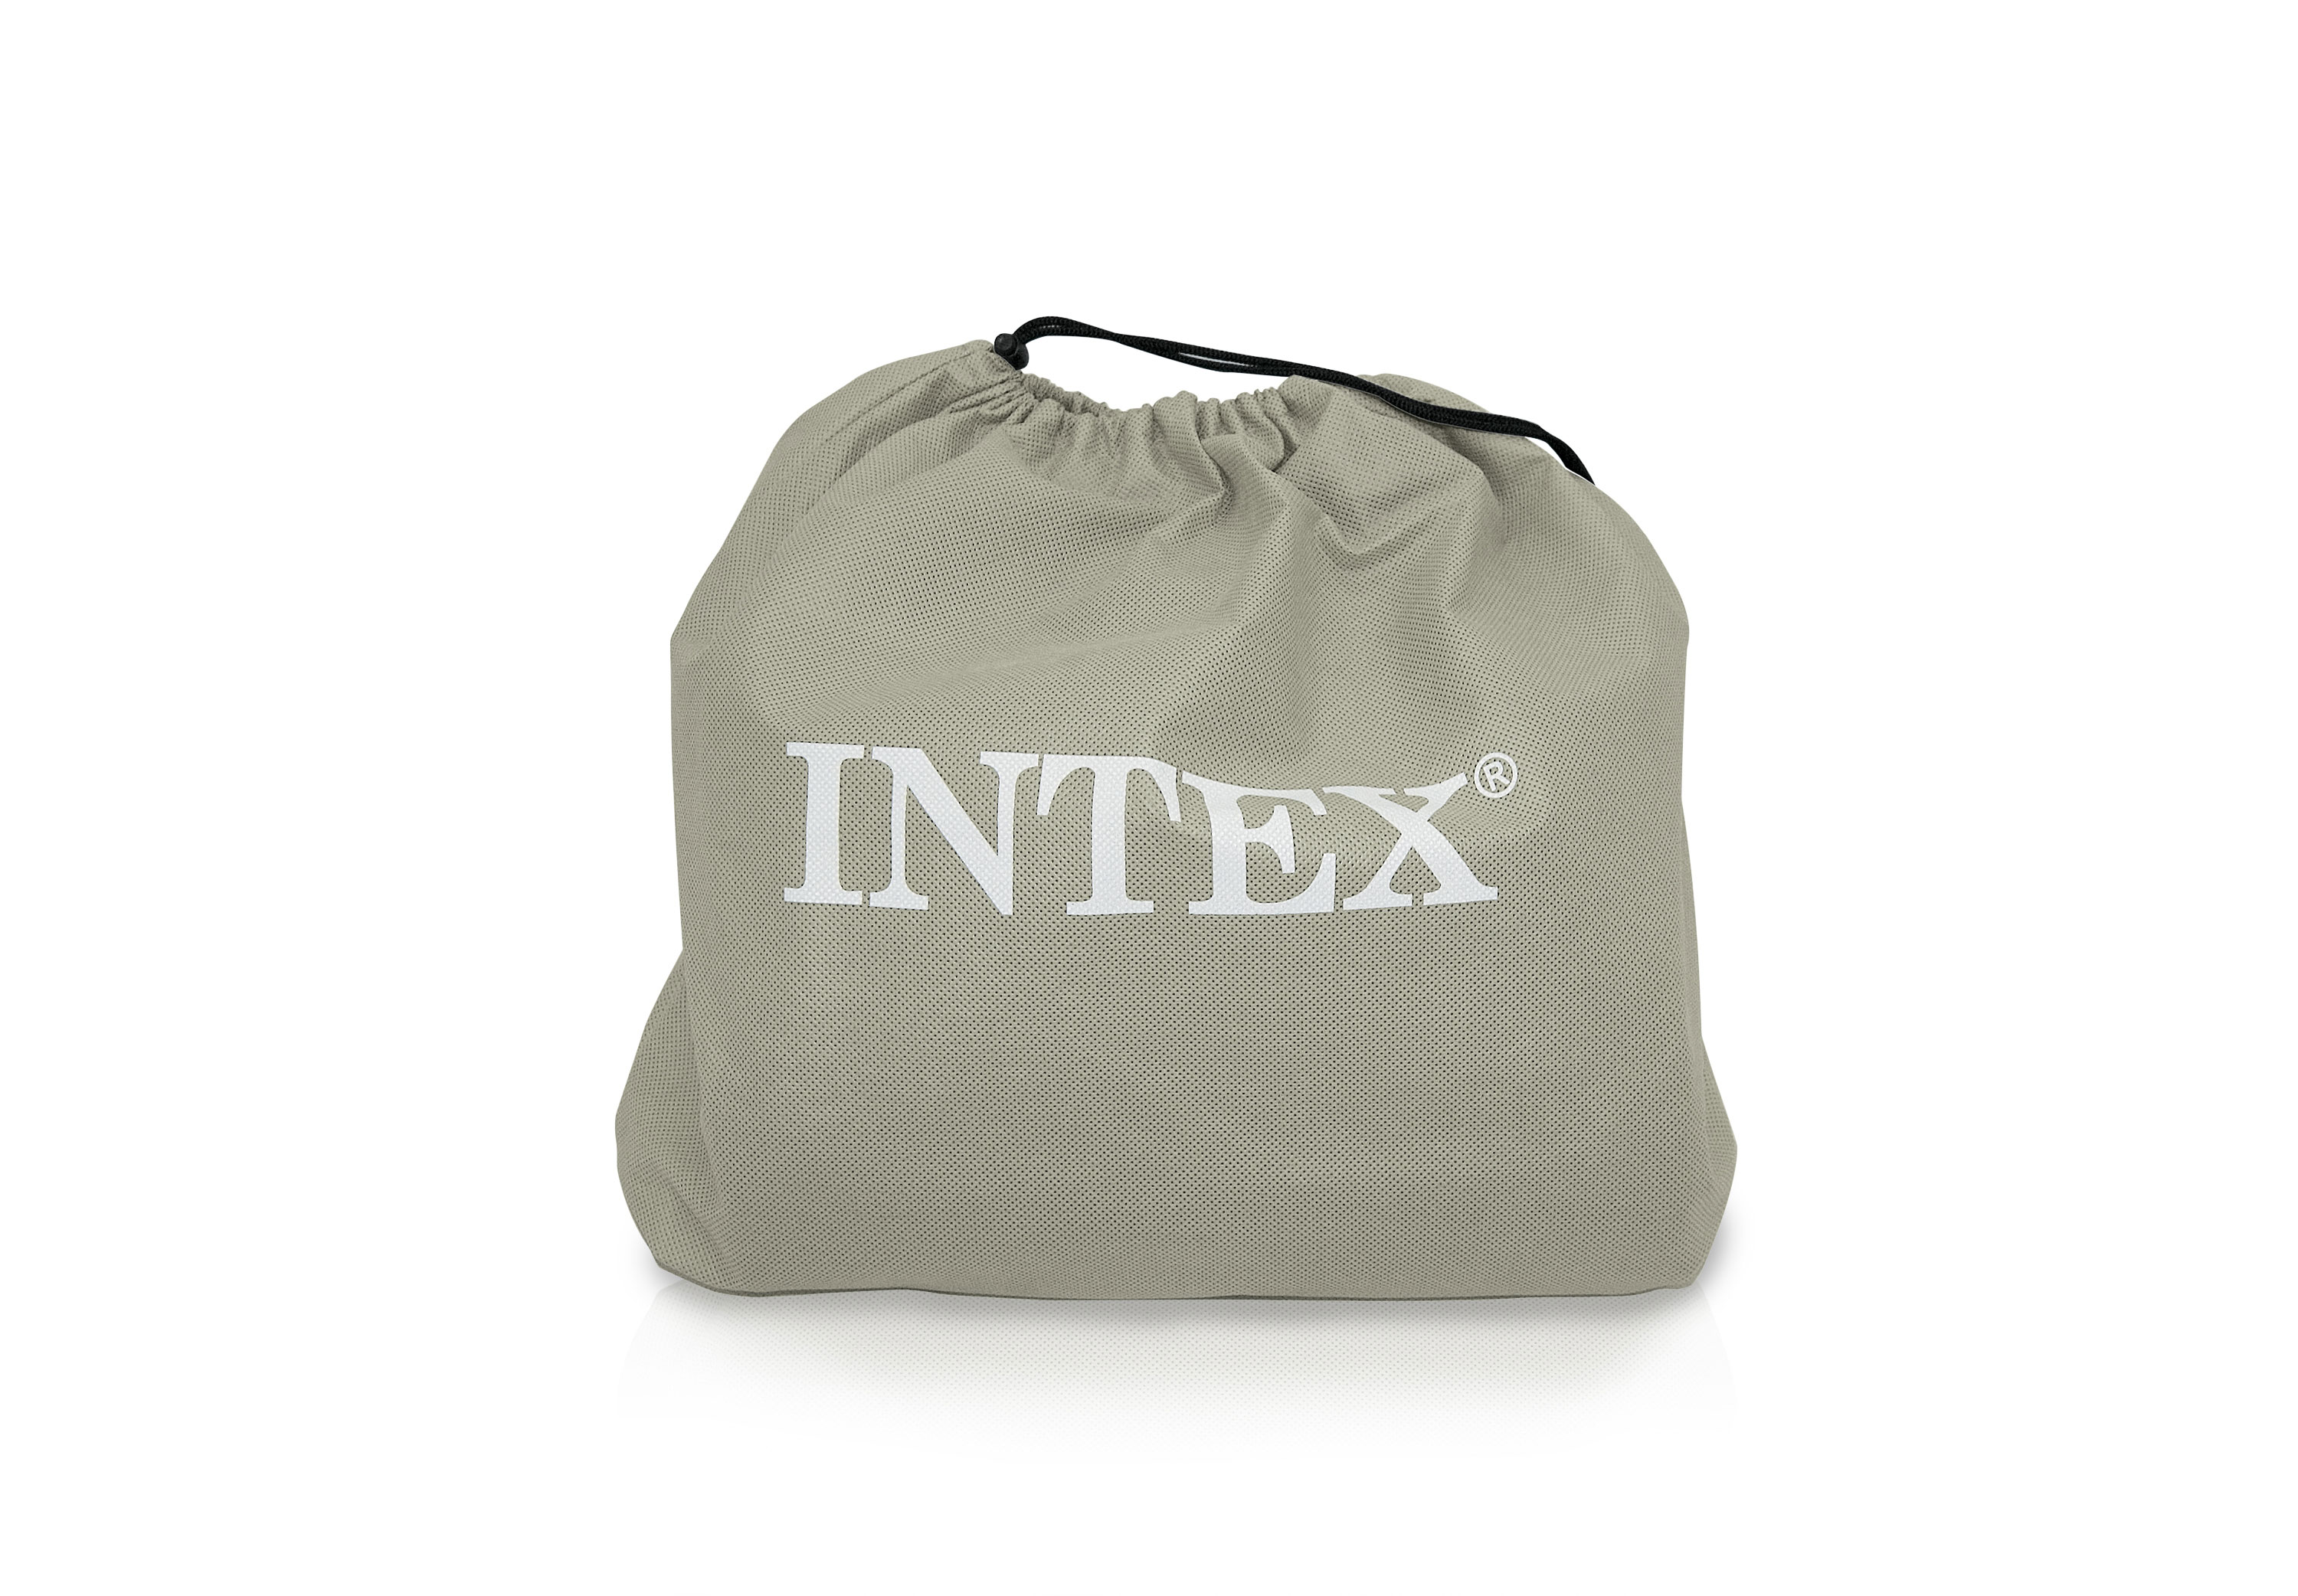 air mattress storage bag Intex Queen Deluxe Pillow Rest Fiber Tech Raised Air Bed Mattress  air mattress storage bag